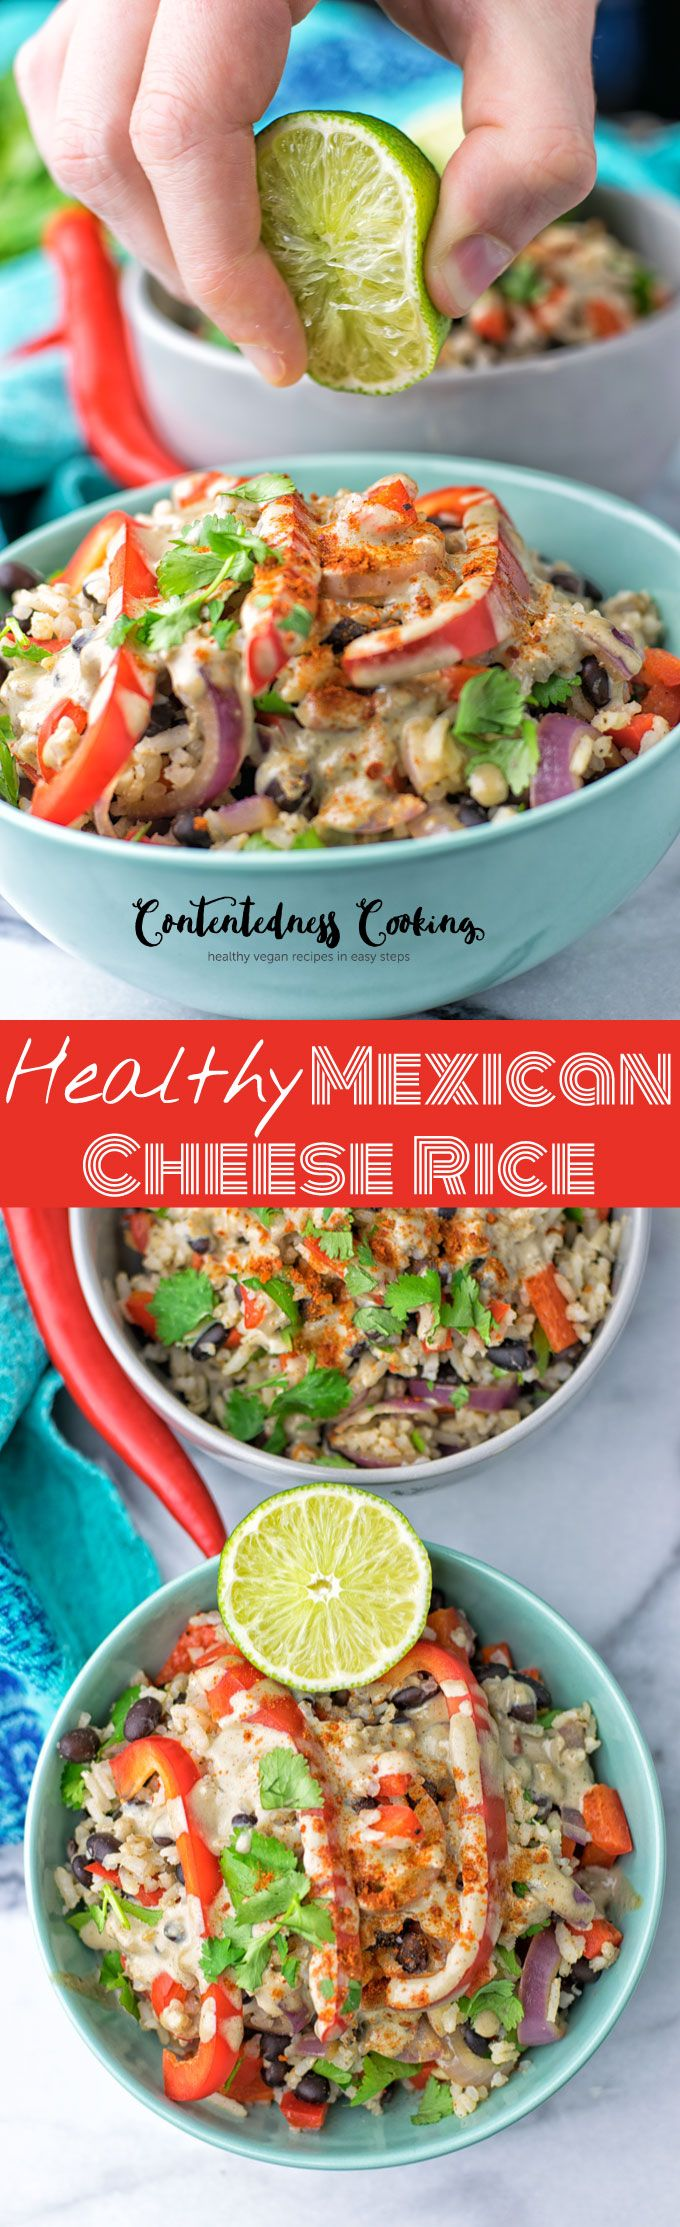 This Healthy Mexican Cheese Rice is made with just 5 simple ingredients and in 2 easy steps. A flavorful crunchy dish showing how delicious vegan Mexcian style food can be!